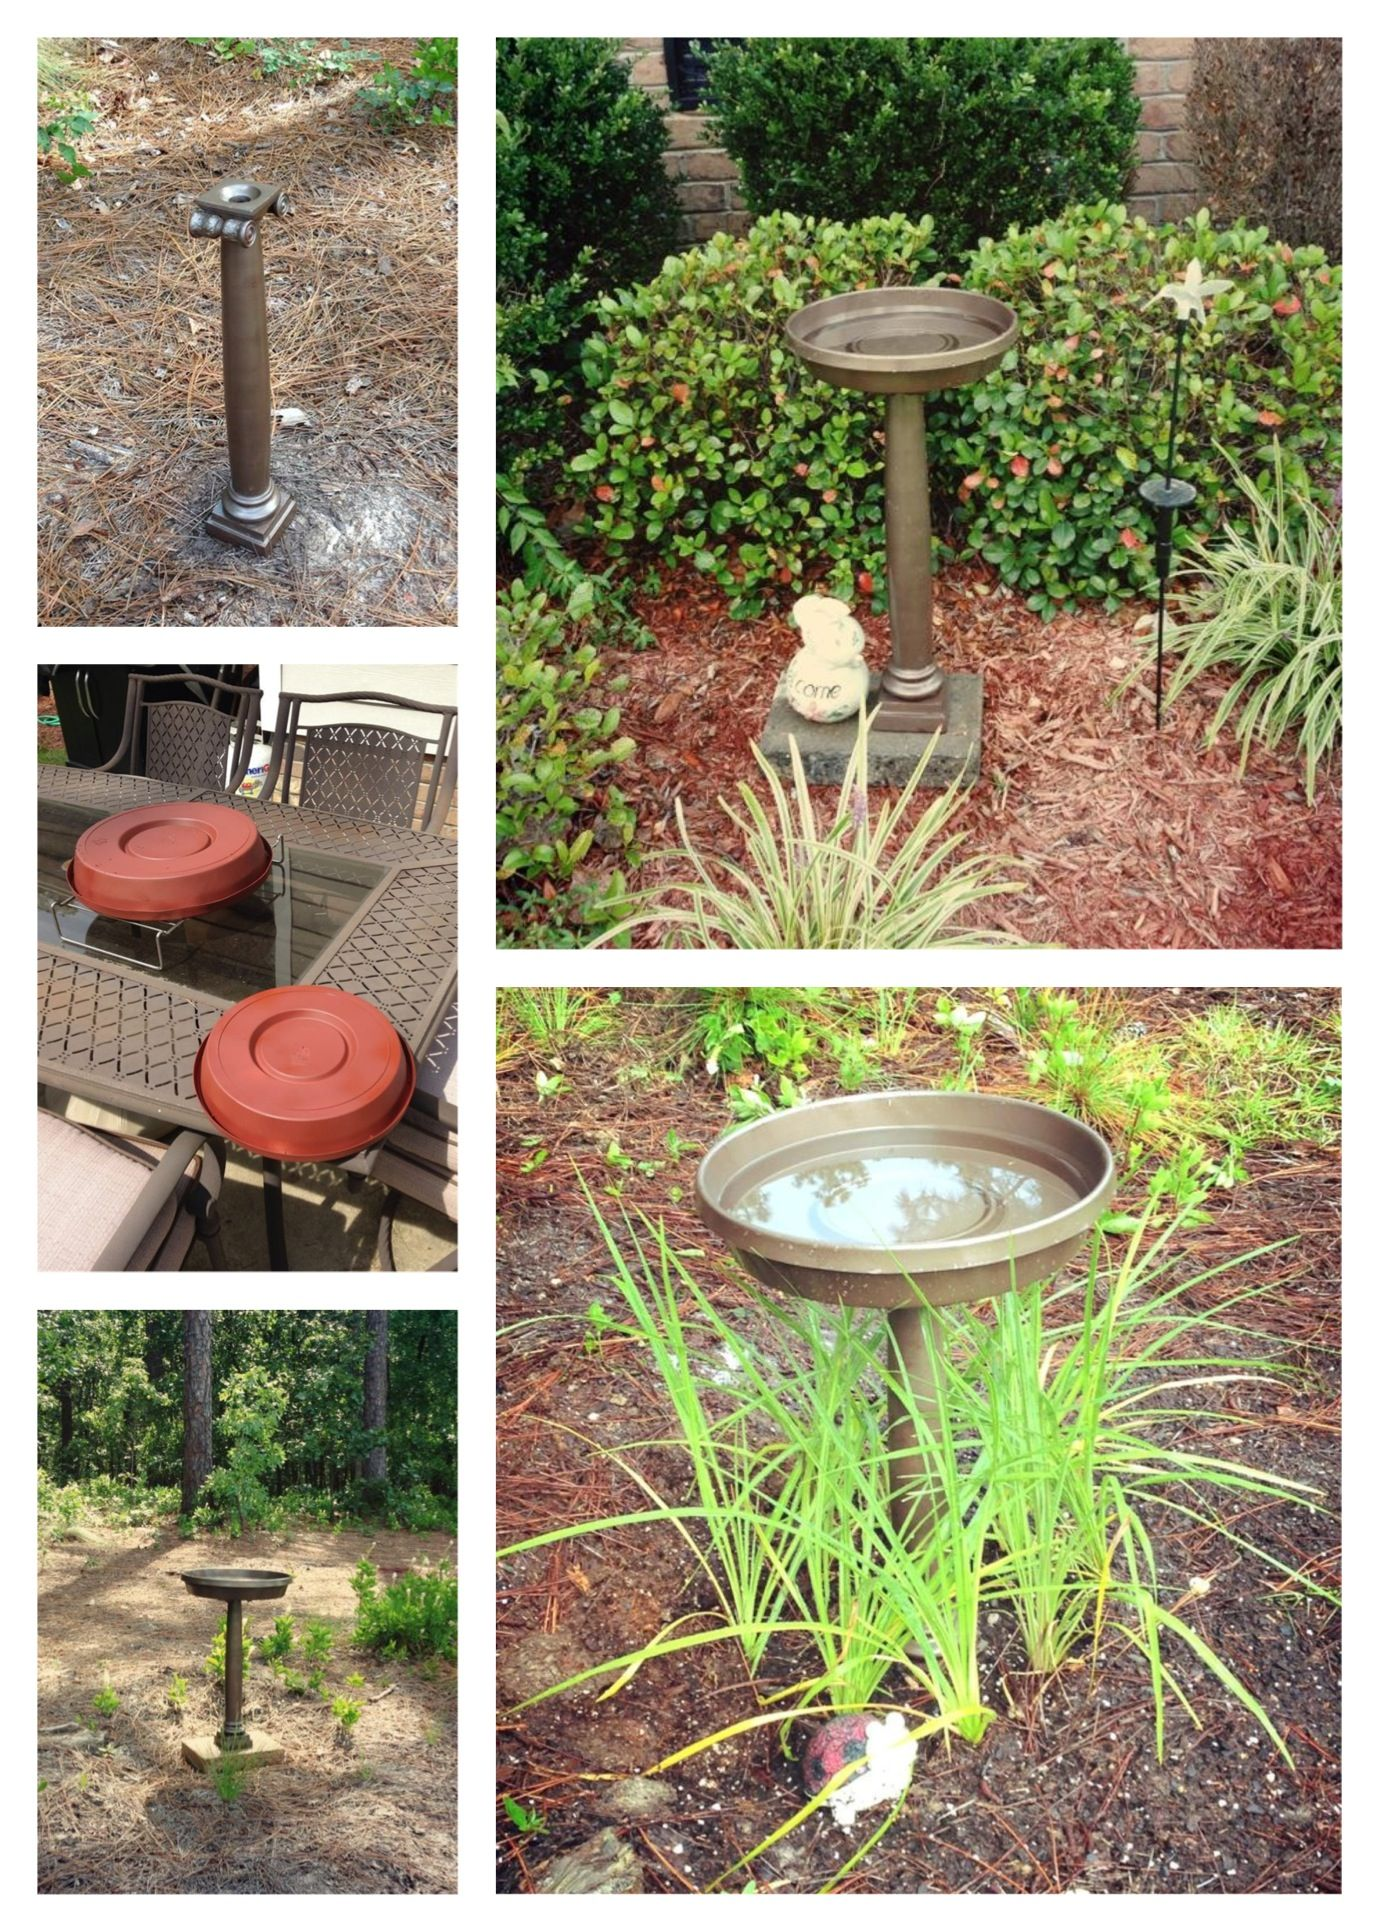 Homemade Bird Bath Made From Floor Candlestick Holders And